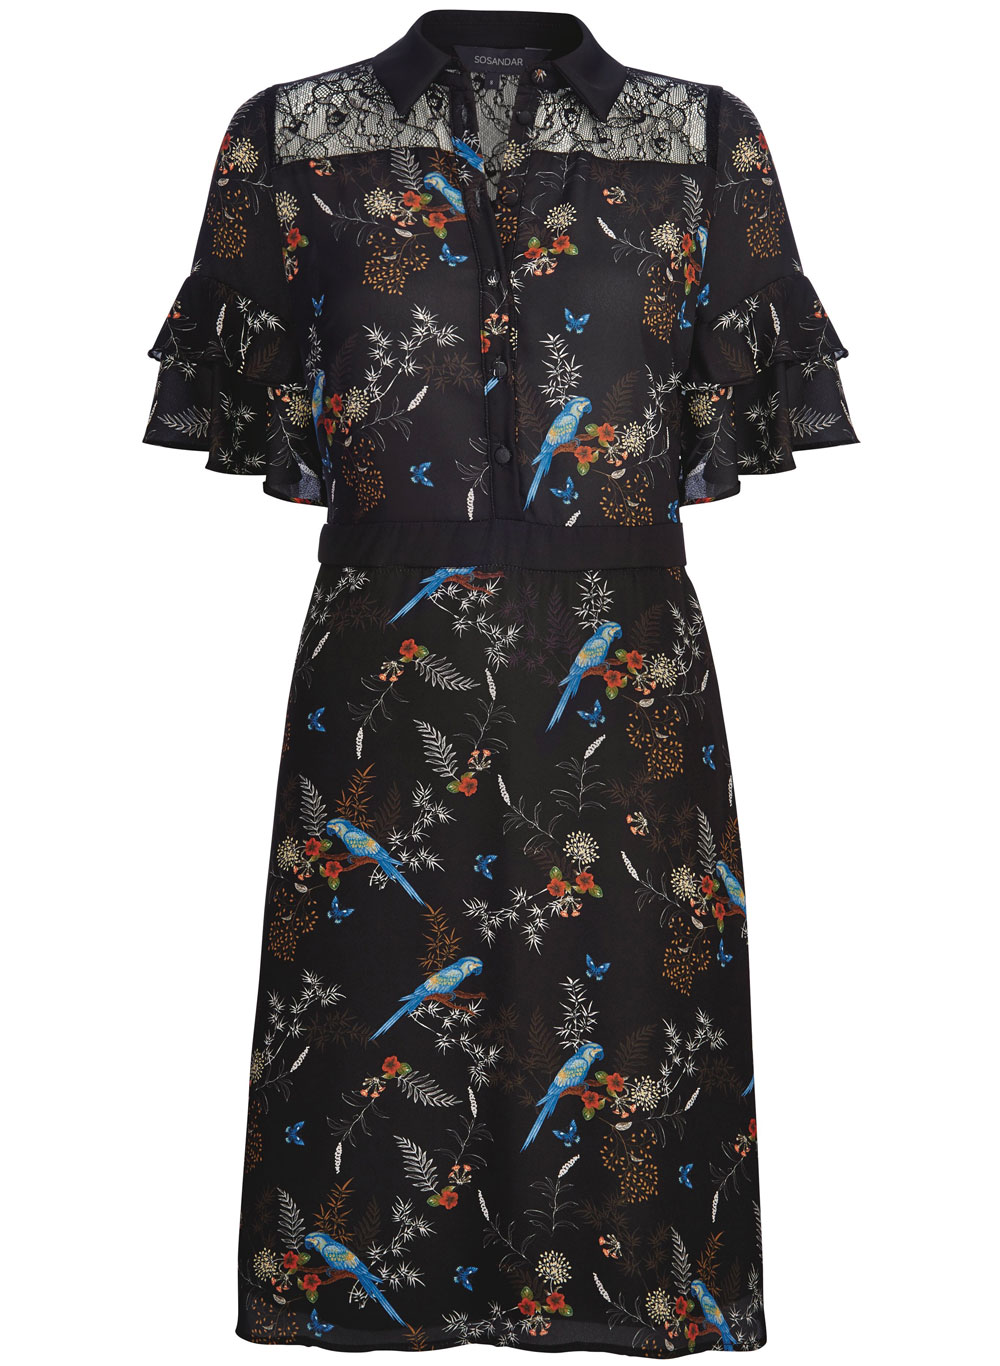 Sosandar Black Parrot Print Lace Detail Dress, £69/AED309.22